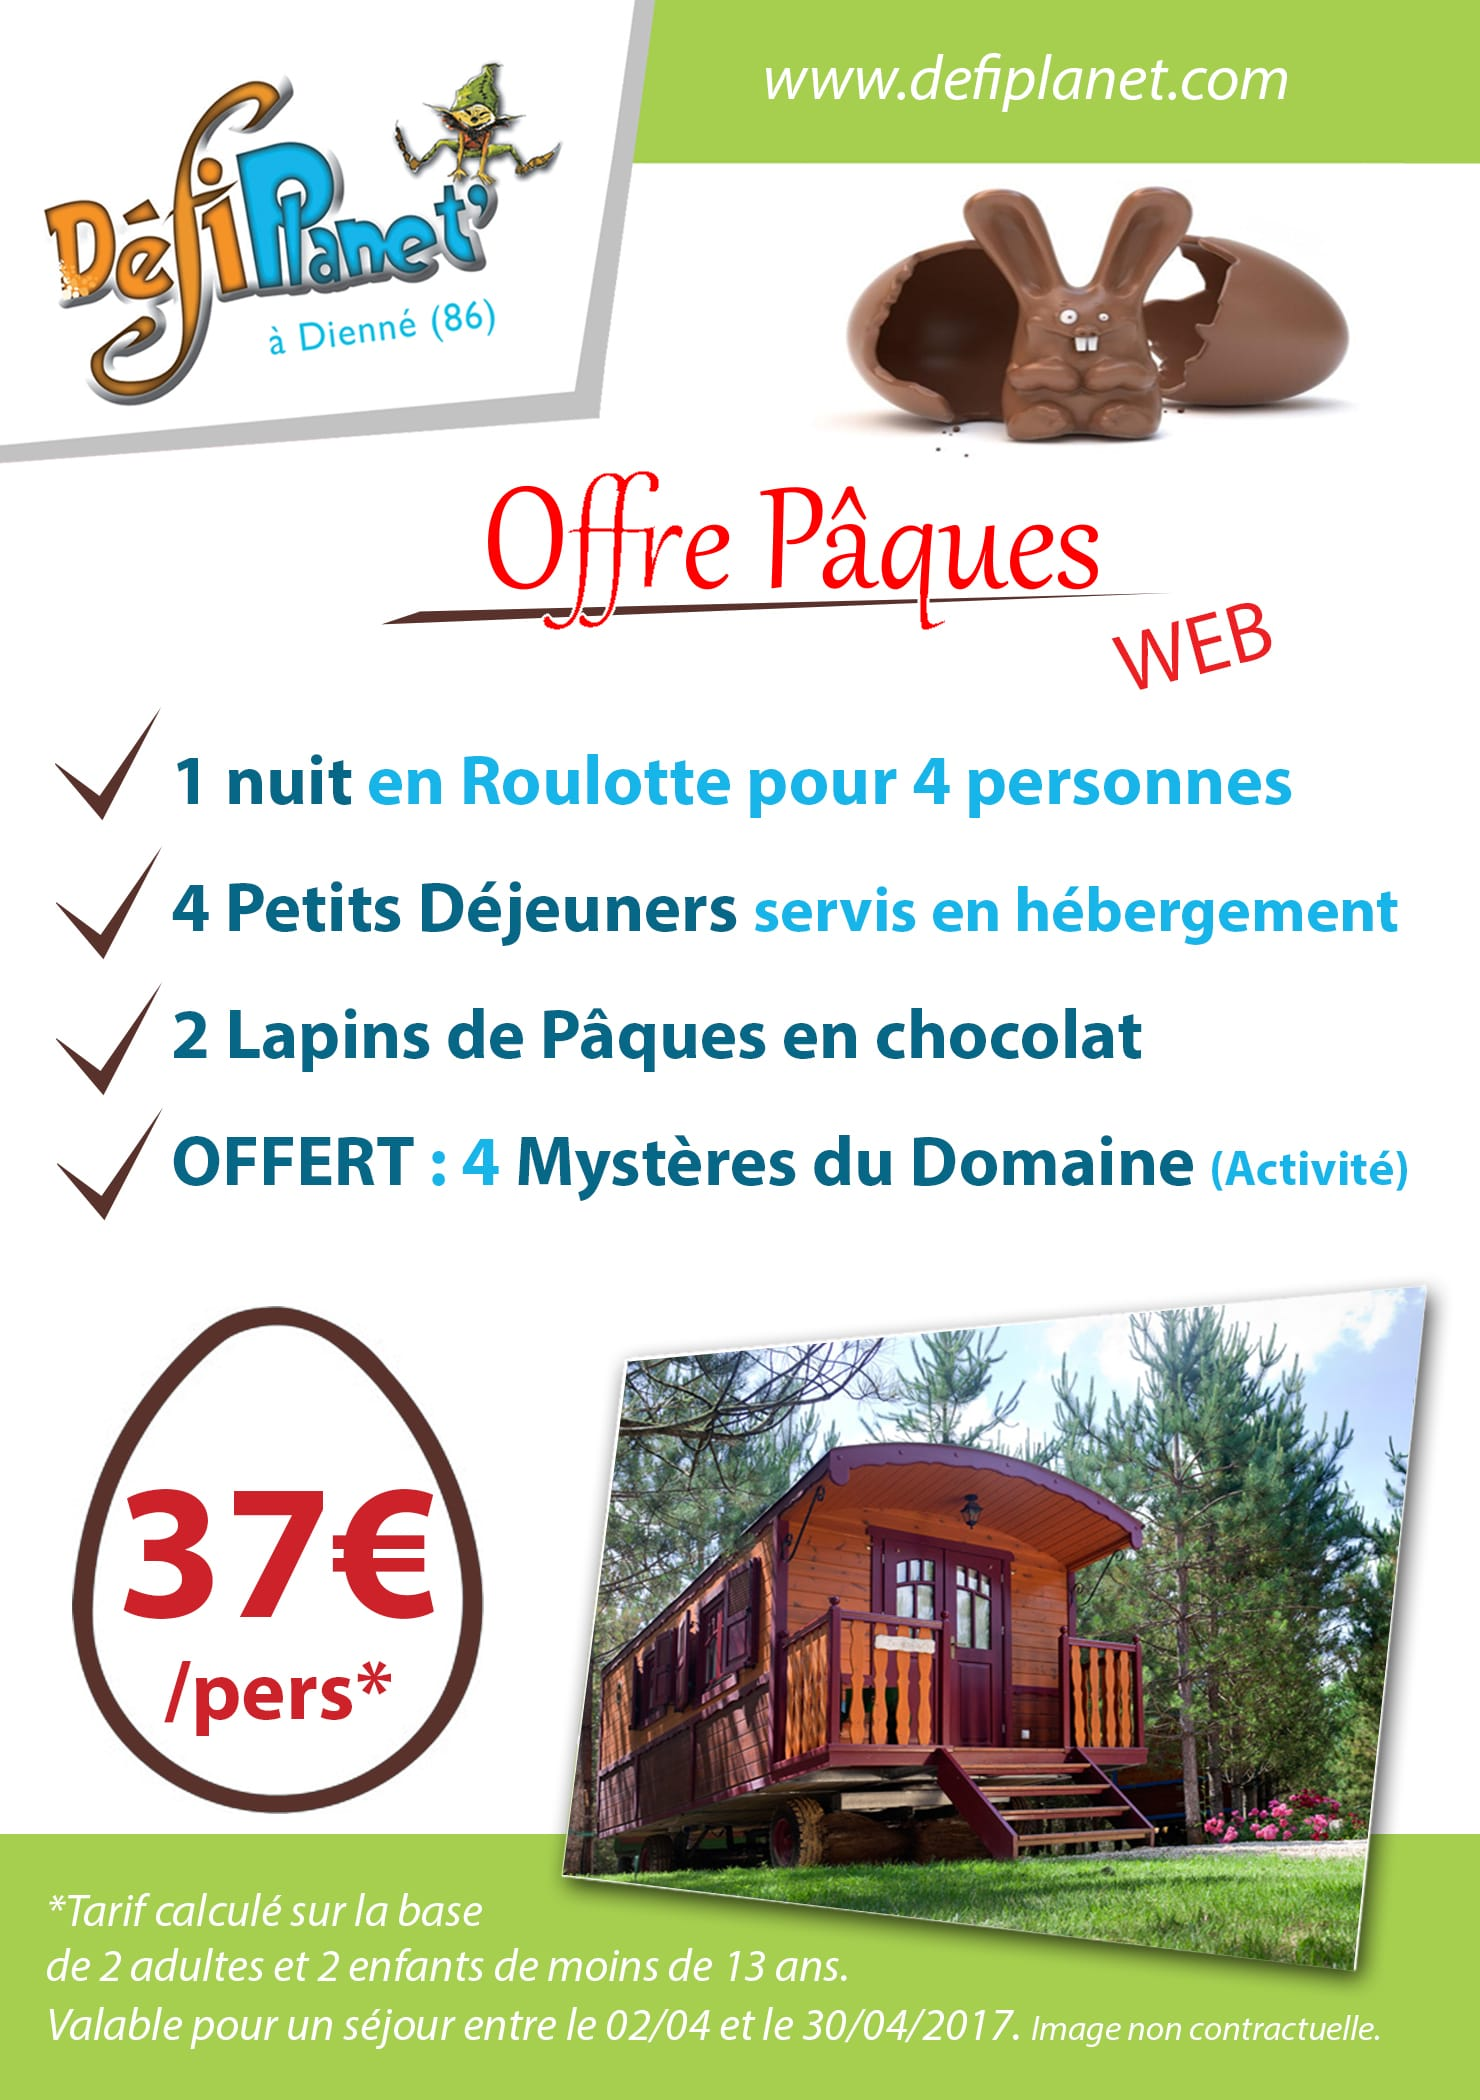 Paques offre hebergement Roulotte